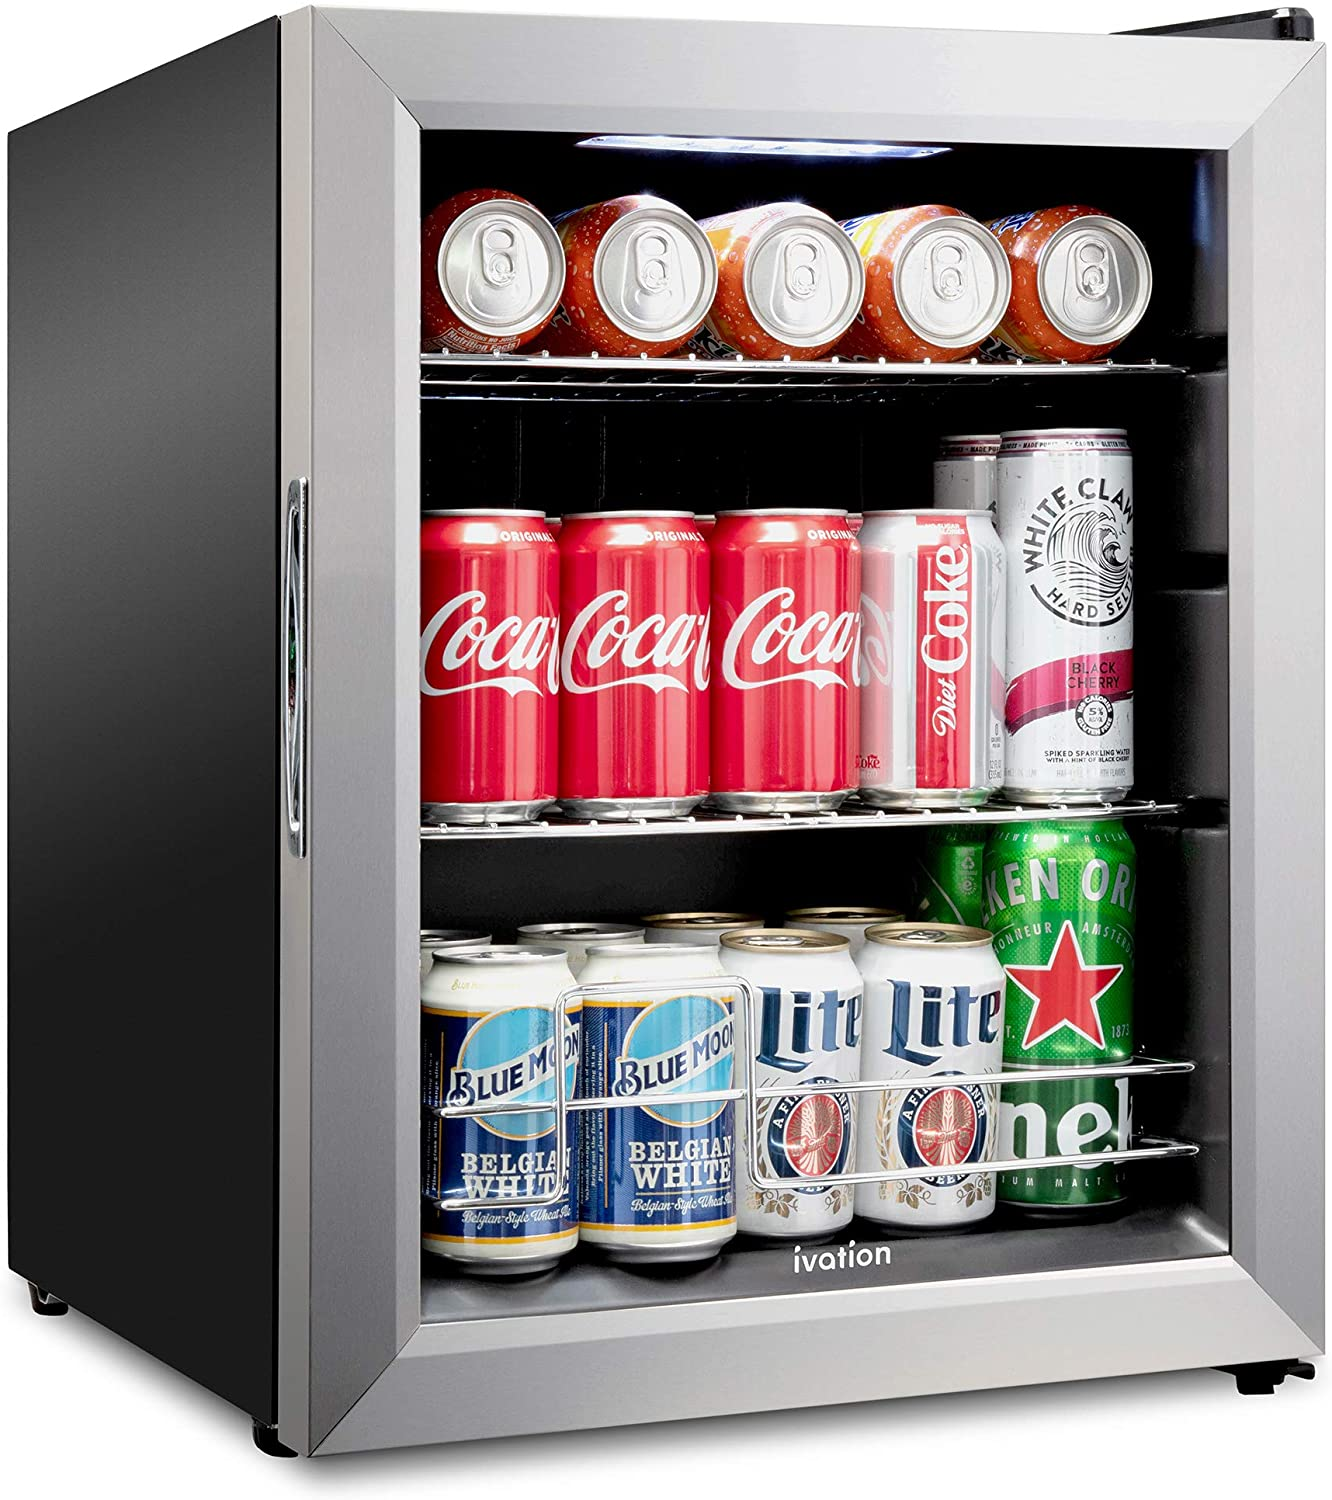 Ivation 62 Can Beverage Refrigerator | Freestanding Ultra Cool Mini Drink Fridge | Beer, Cocktails, Soda, Juice Cooler for Home & Office | Reversible Glass Door & Adjustable Shelving - Stainless Steel